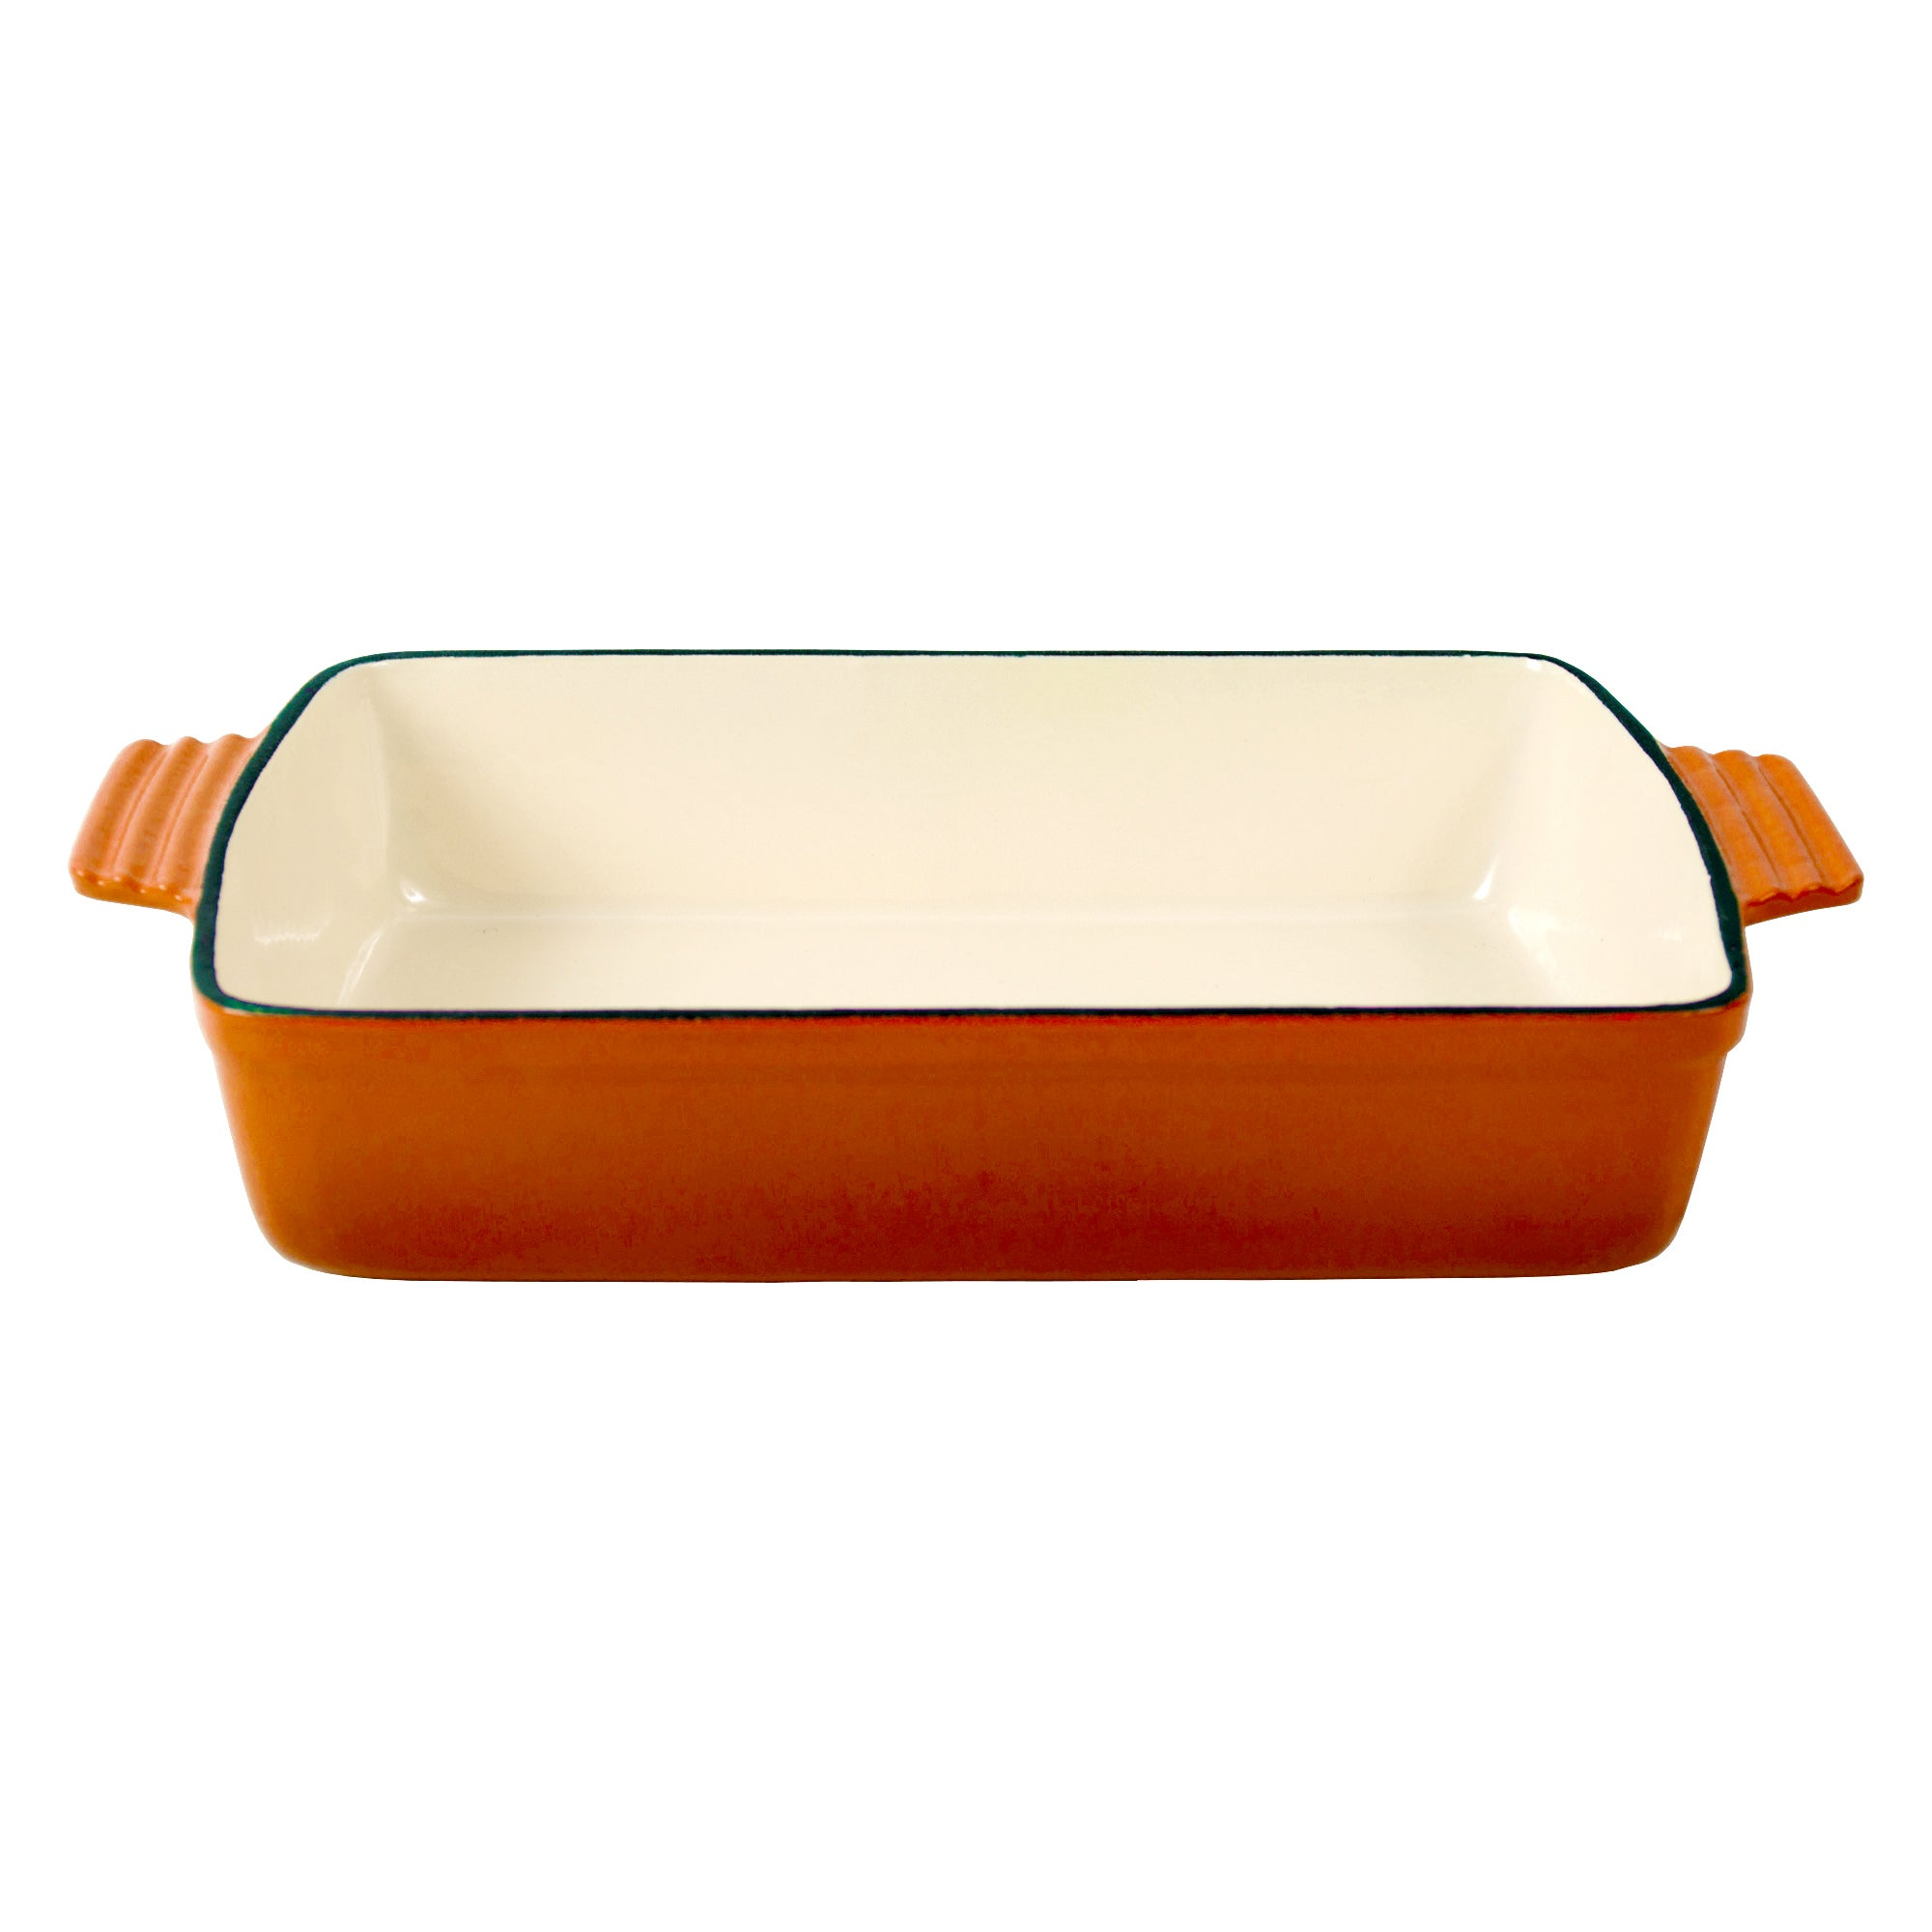 Orange Spectrum Collection Cast Iron Rectangular Roaster